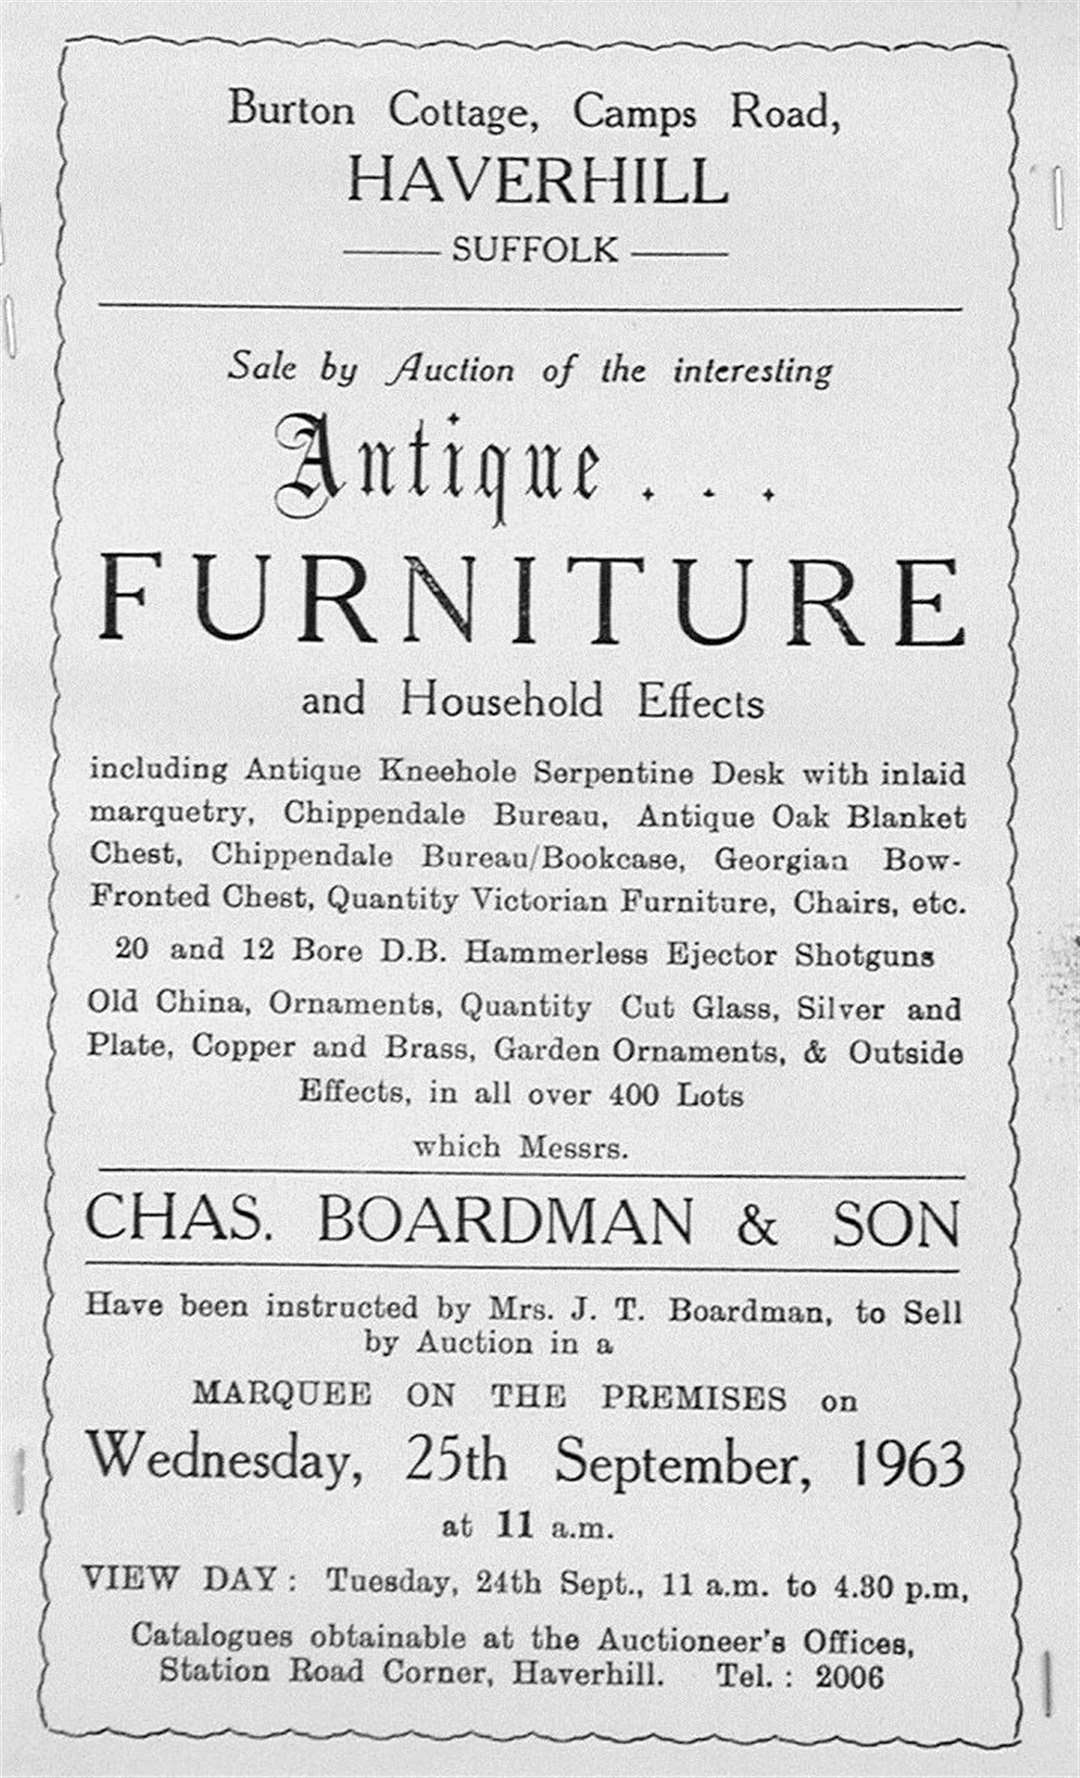 The catalogue for the 1963 sale by Chas. Boardman & Son of items from Burton Cottage in Haverhill. Picture: Neil Lanham